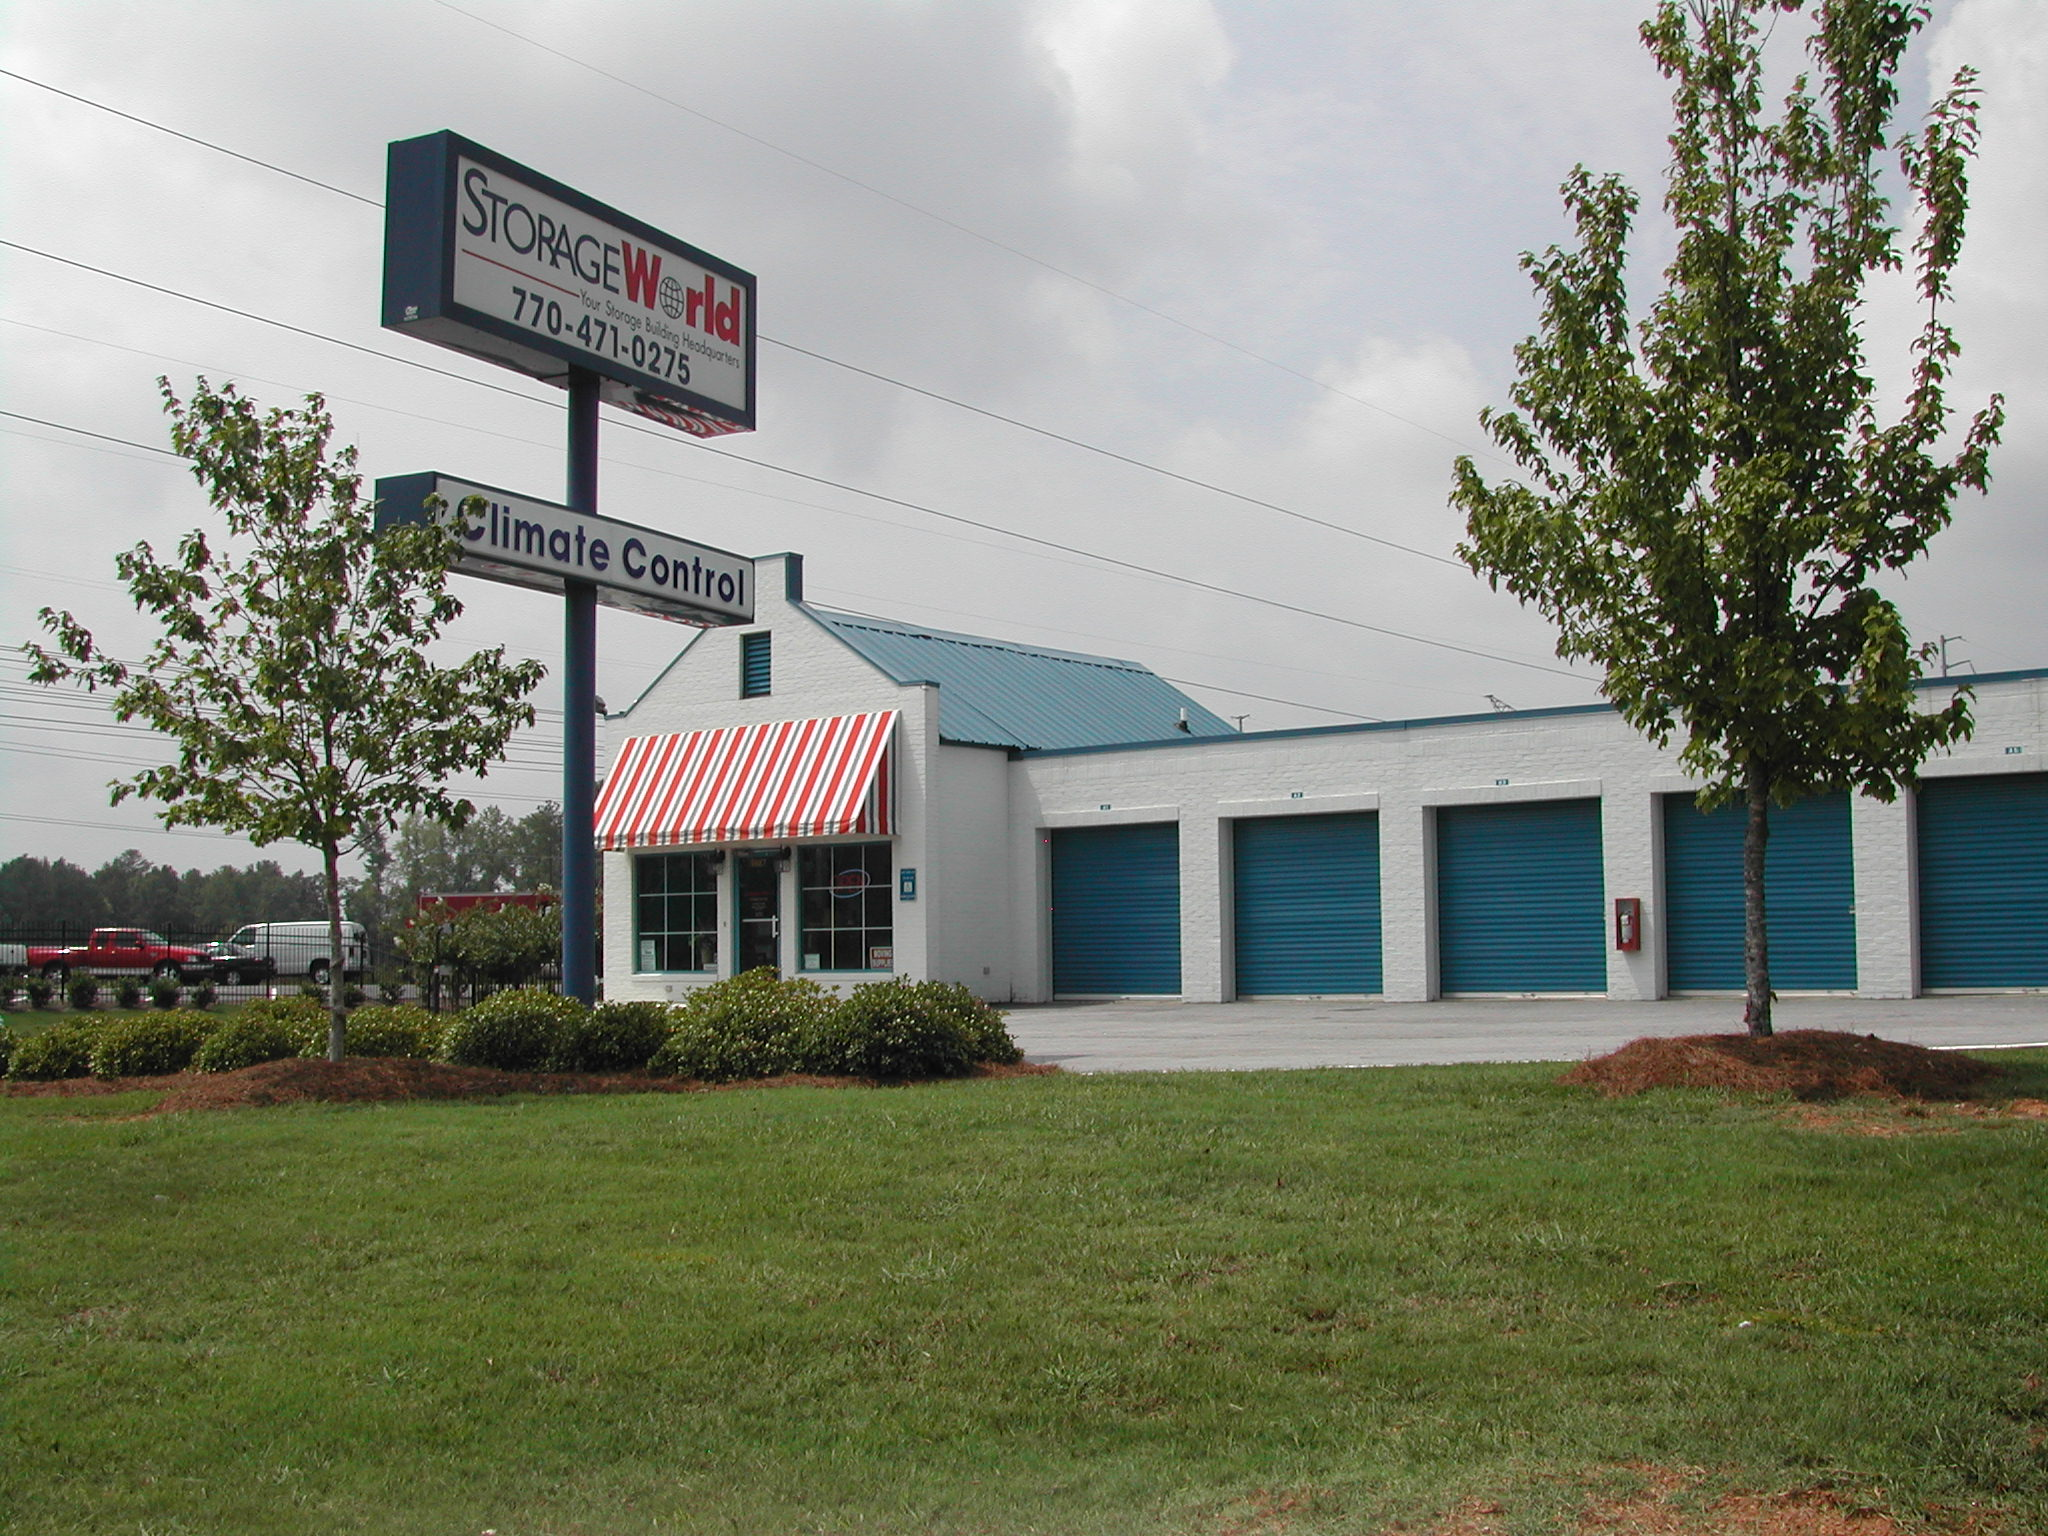 Storage Units In Jonesboro